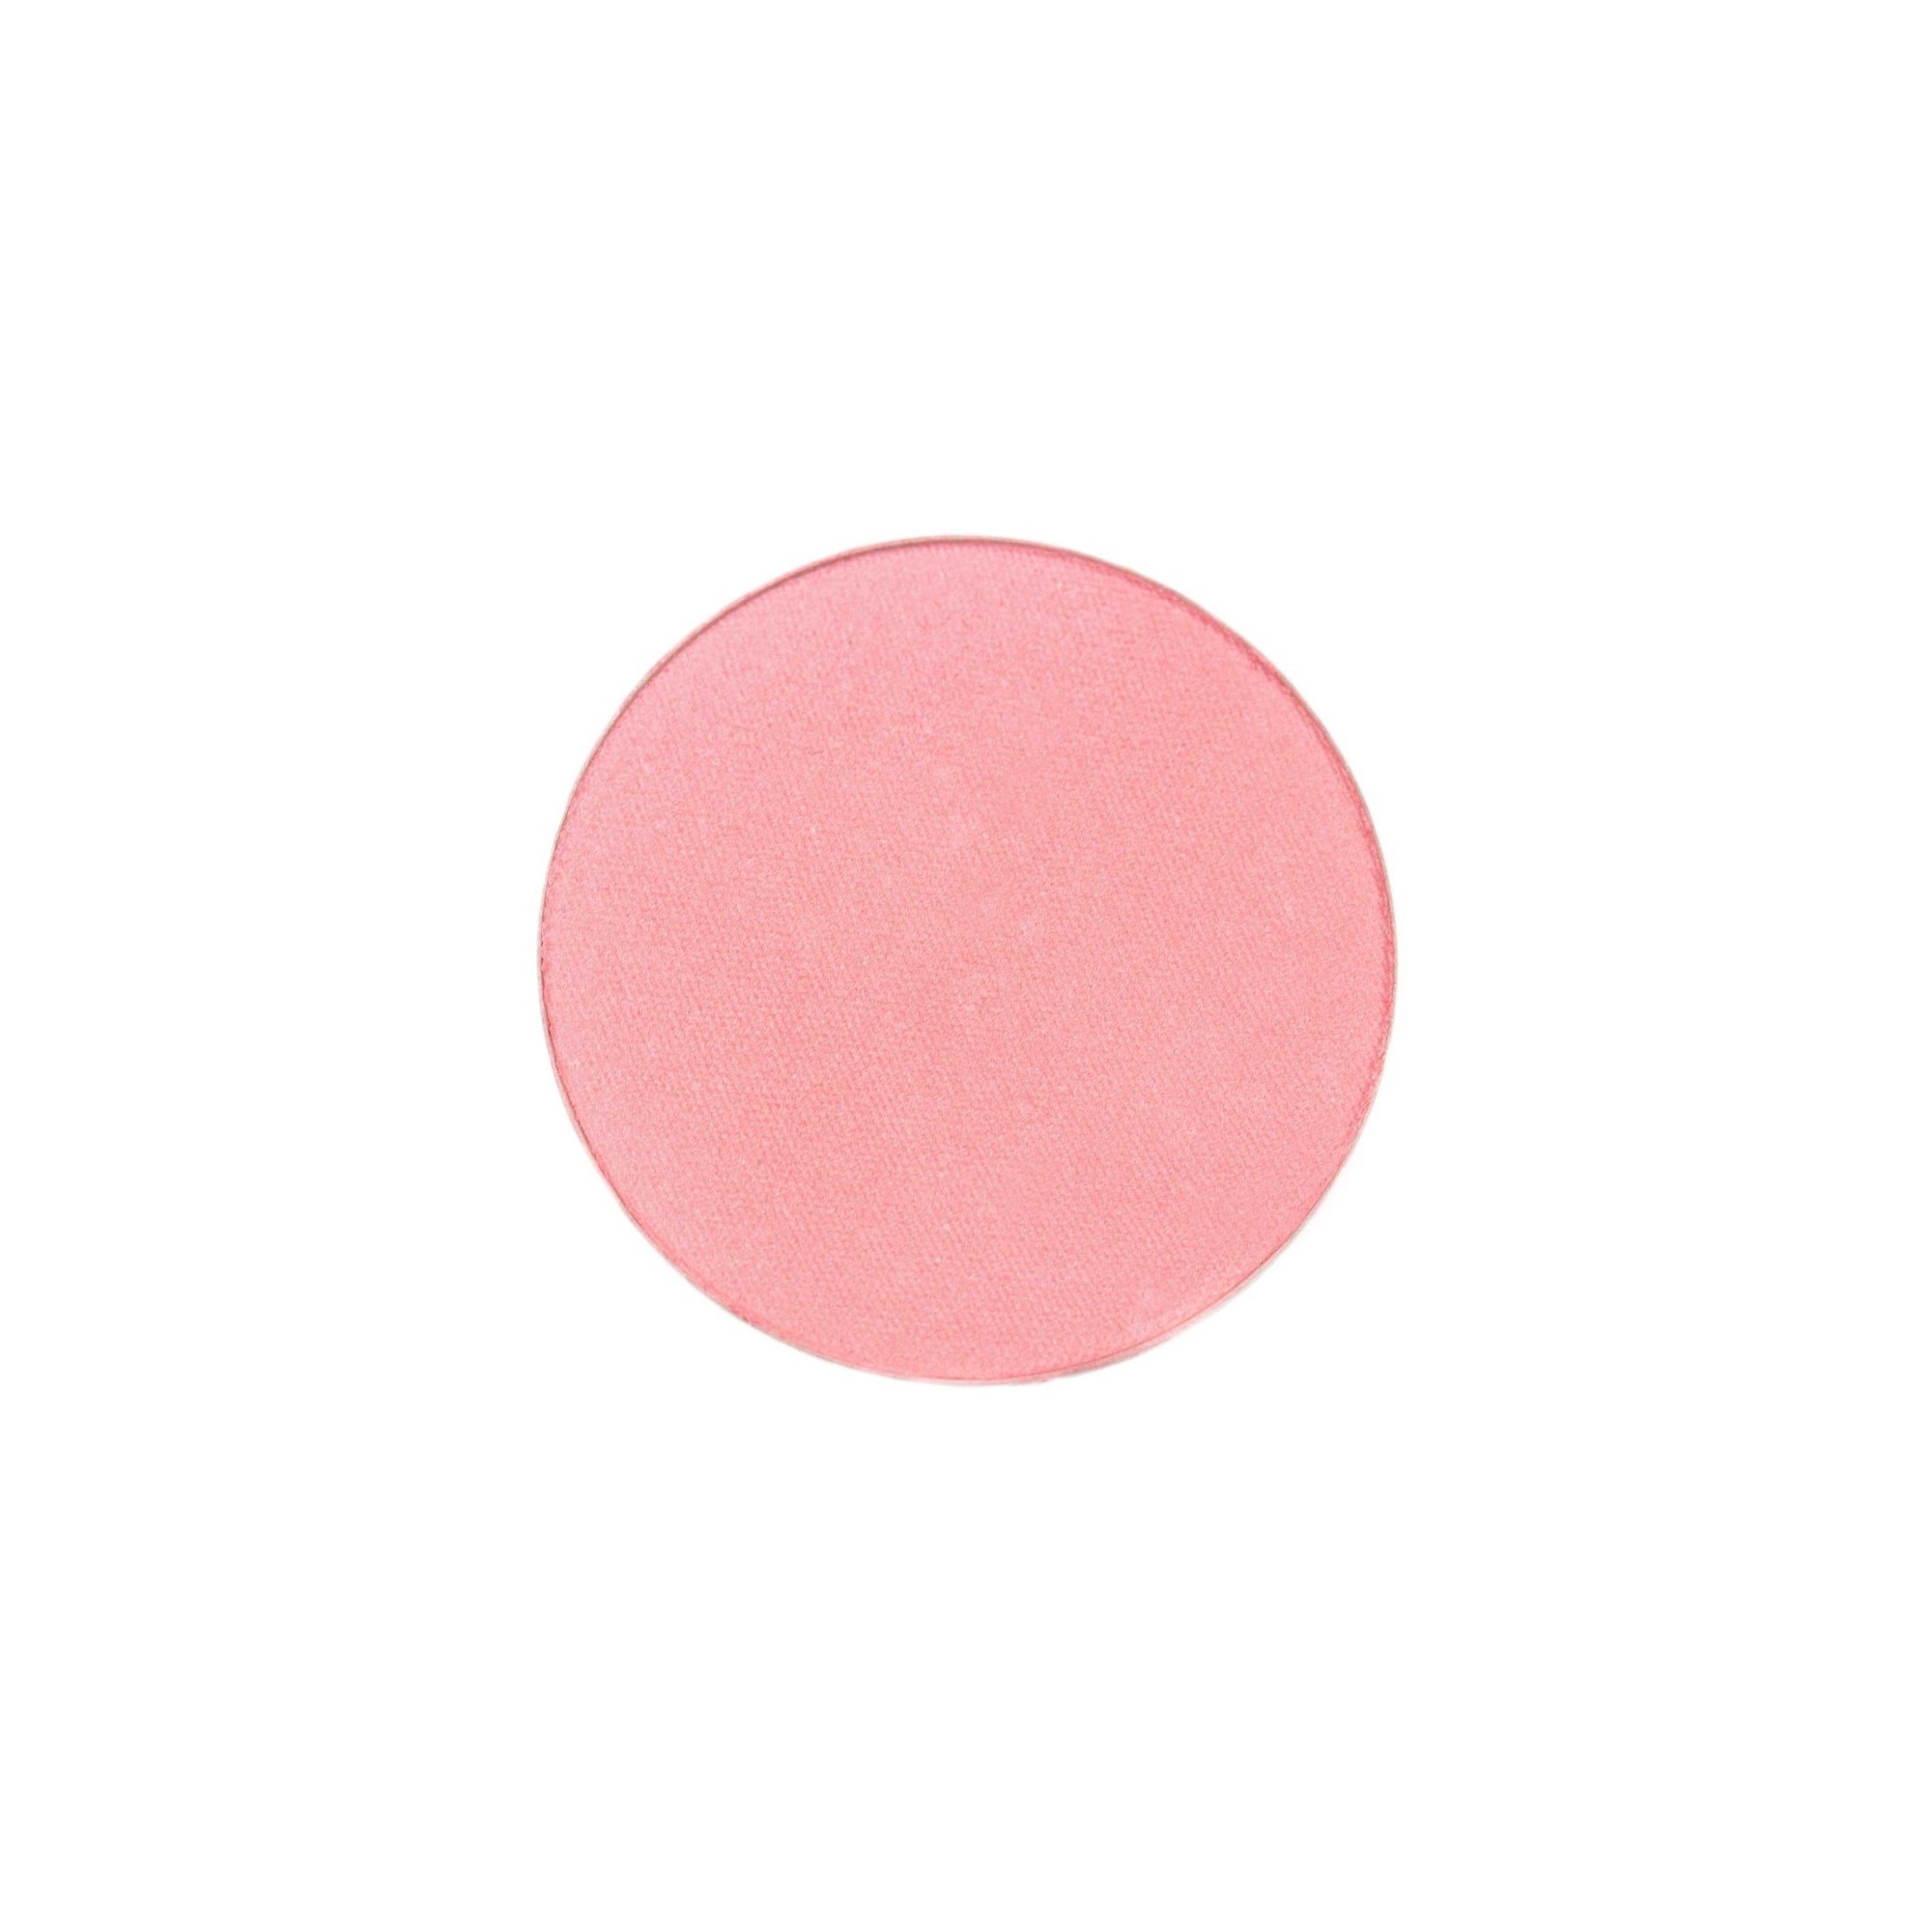 Makeup Geek Blush Pan Head Over Heals